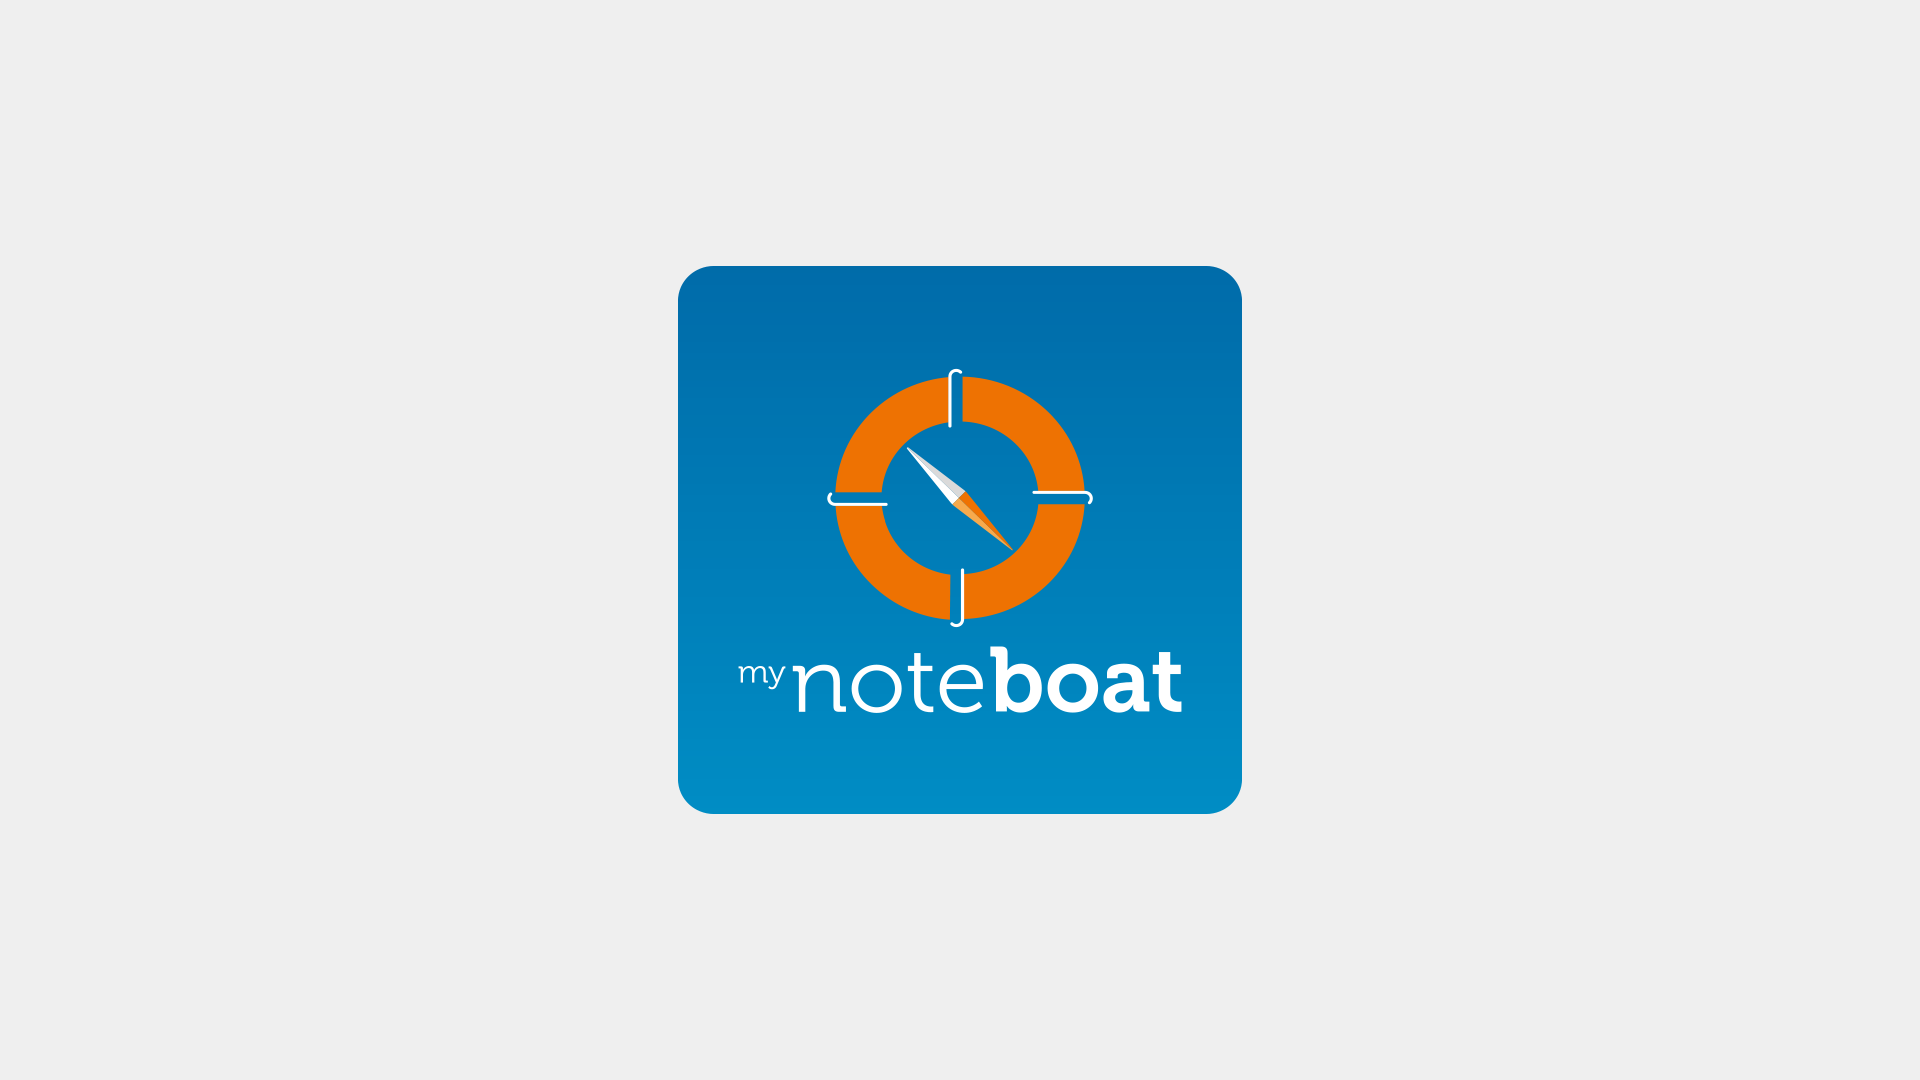 My-note-boat_1920x1080px